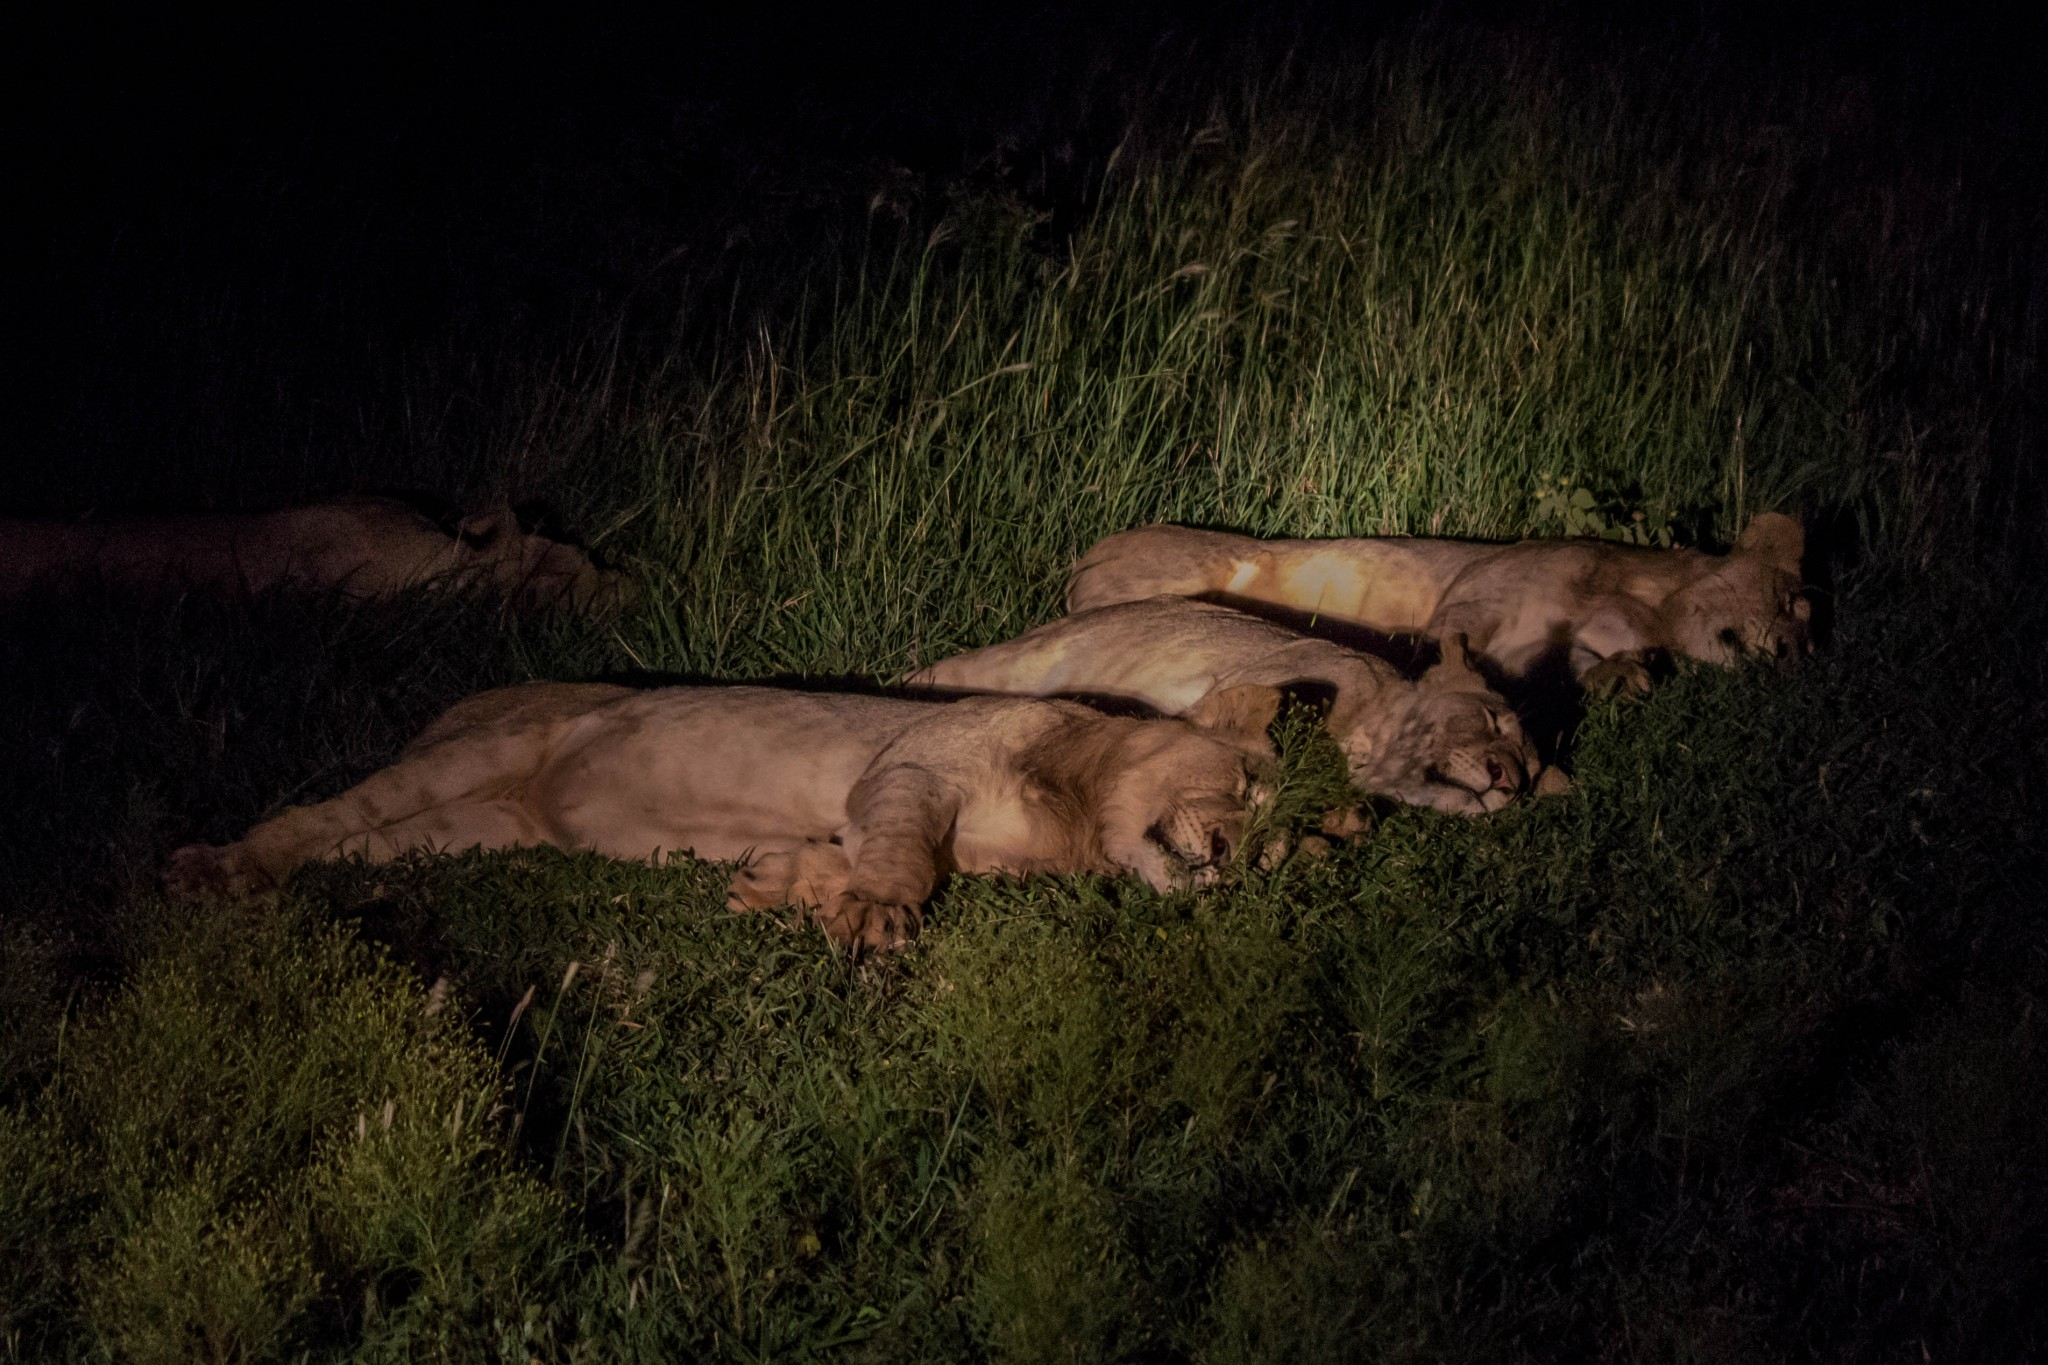 Lions Sleeping at Night @ Thanda Private Game Reserve. Photo: Håvard Rosenlund